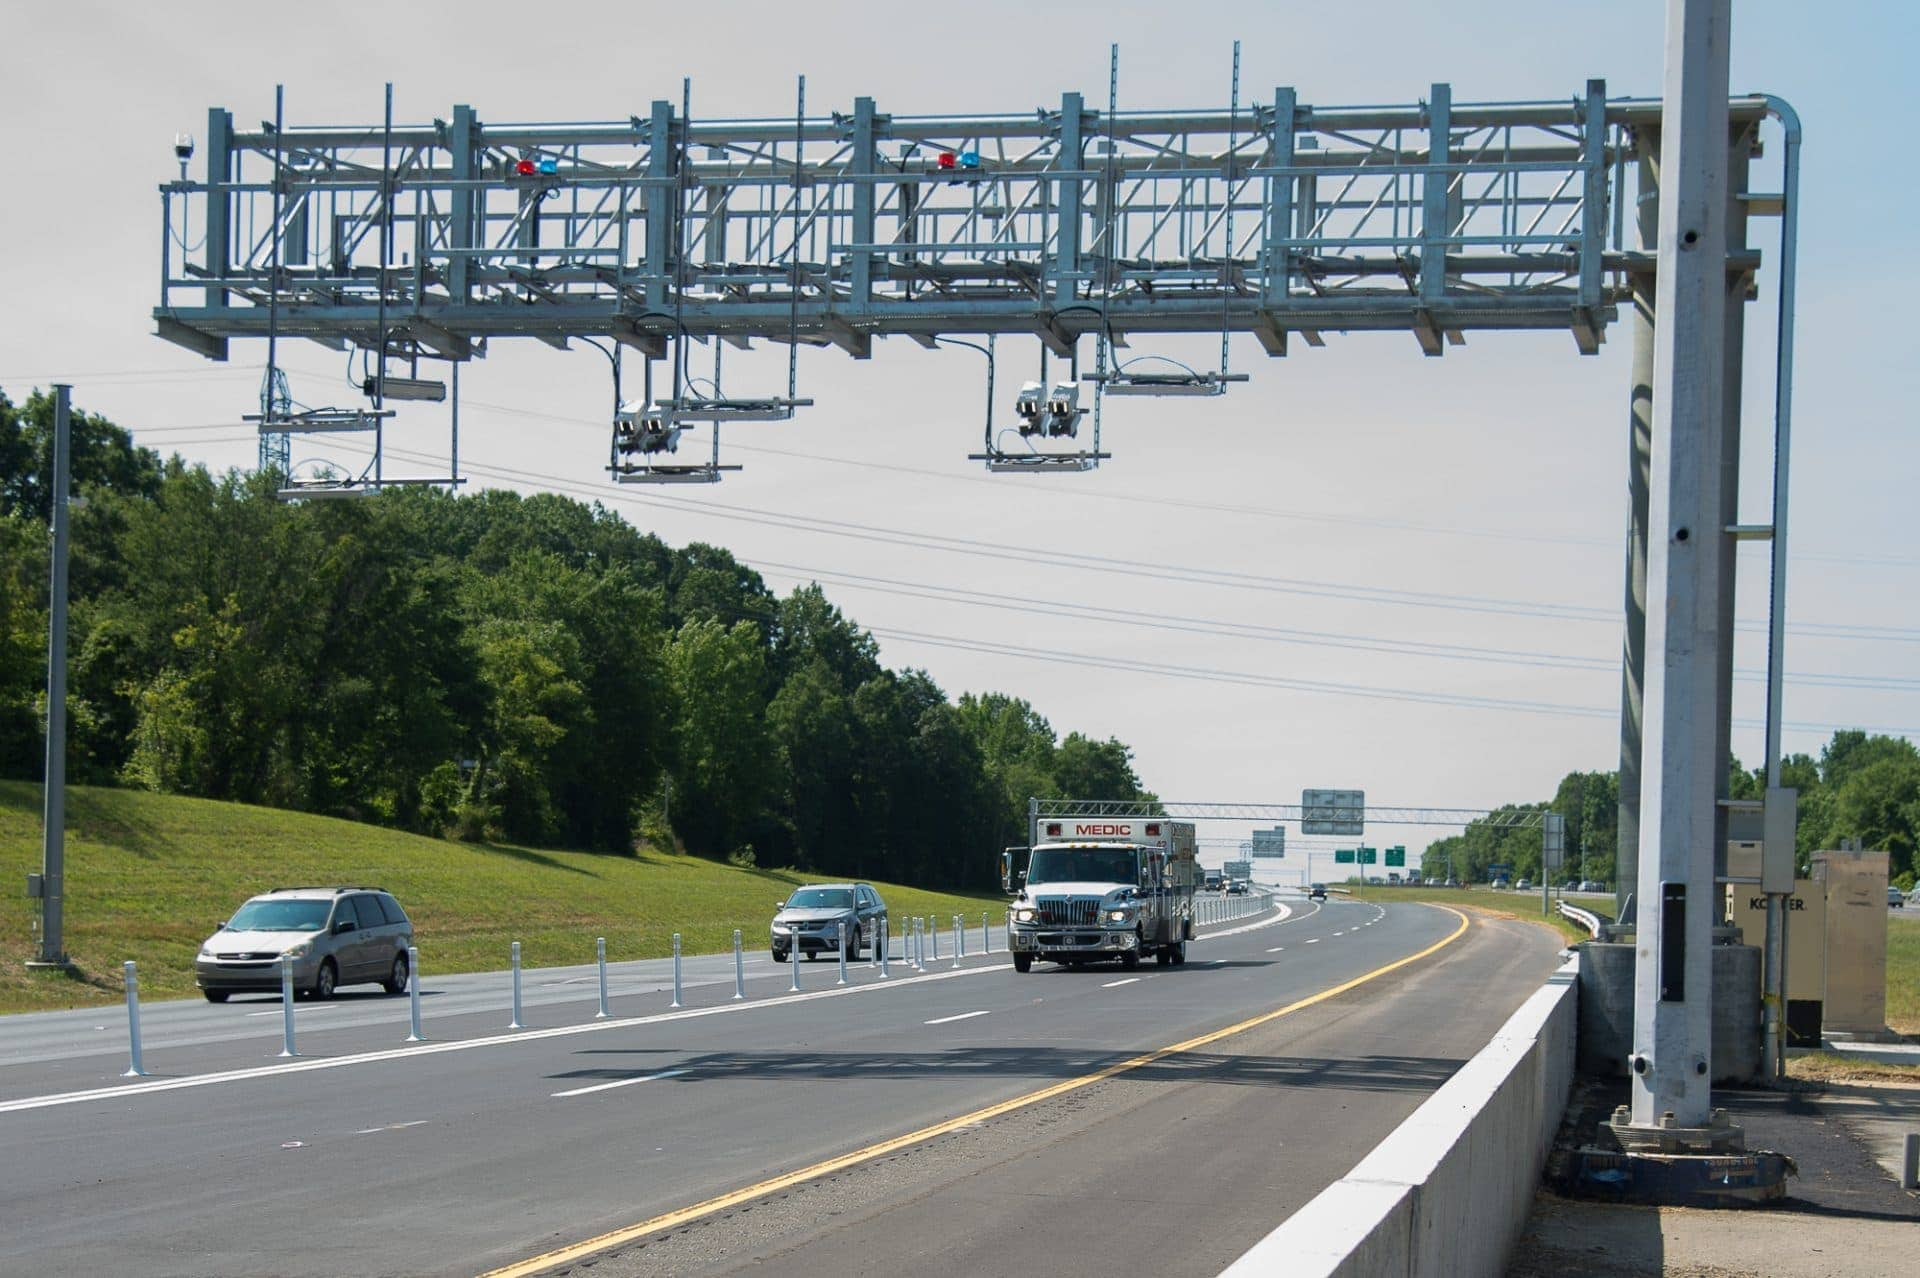 Northern section of the I-77 Express lanes project, from Hambright Road to Exit 36 in Mooresville